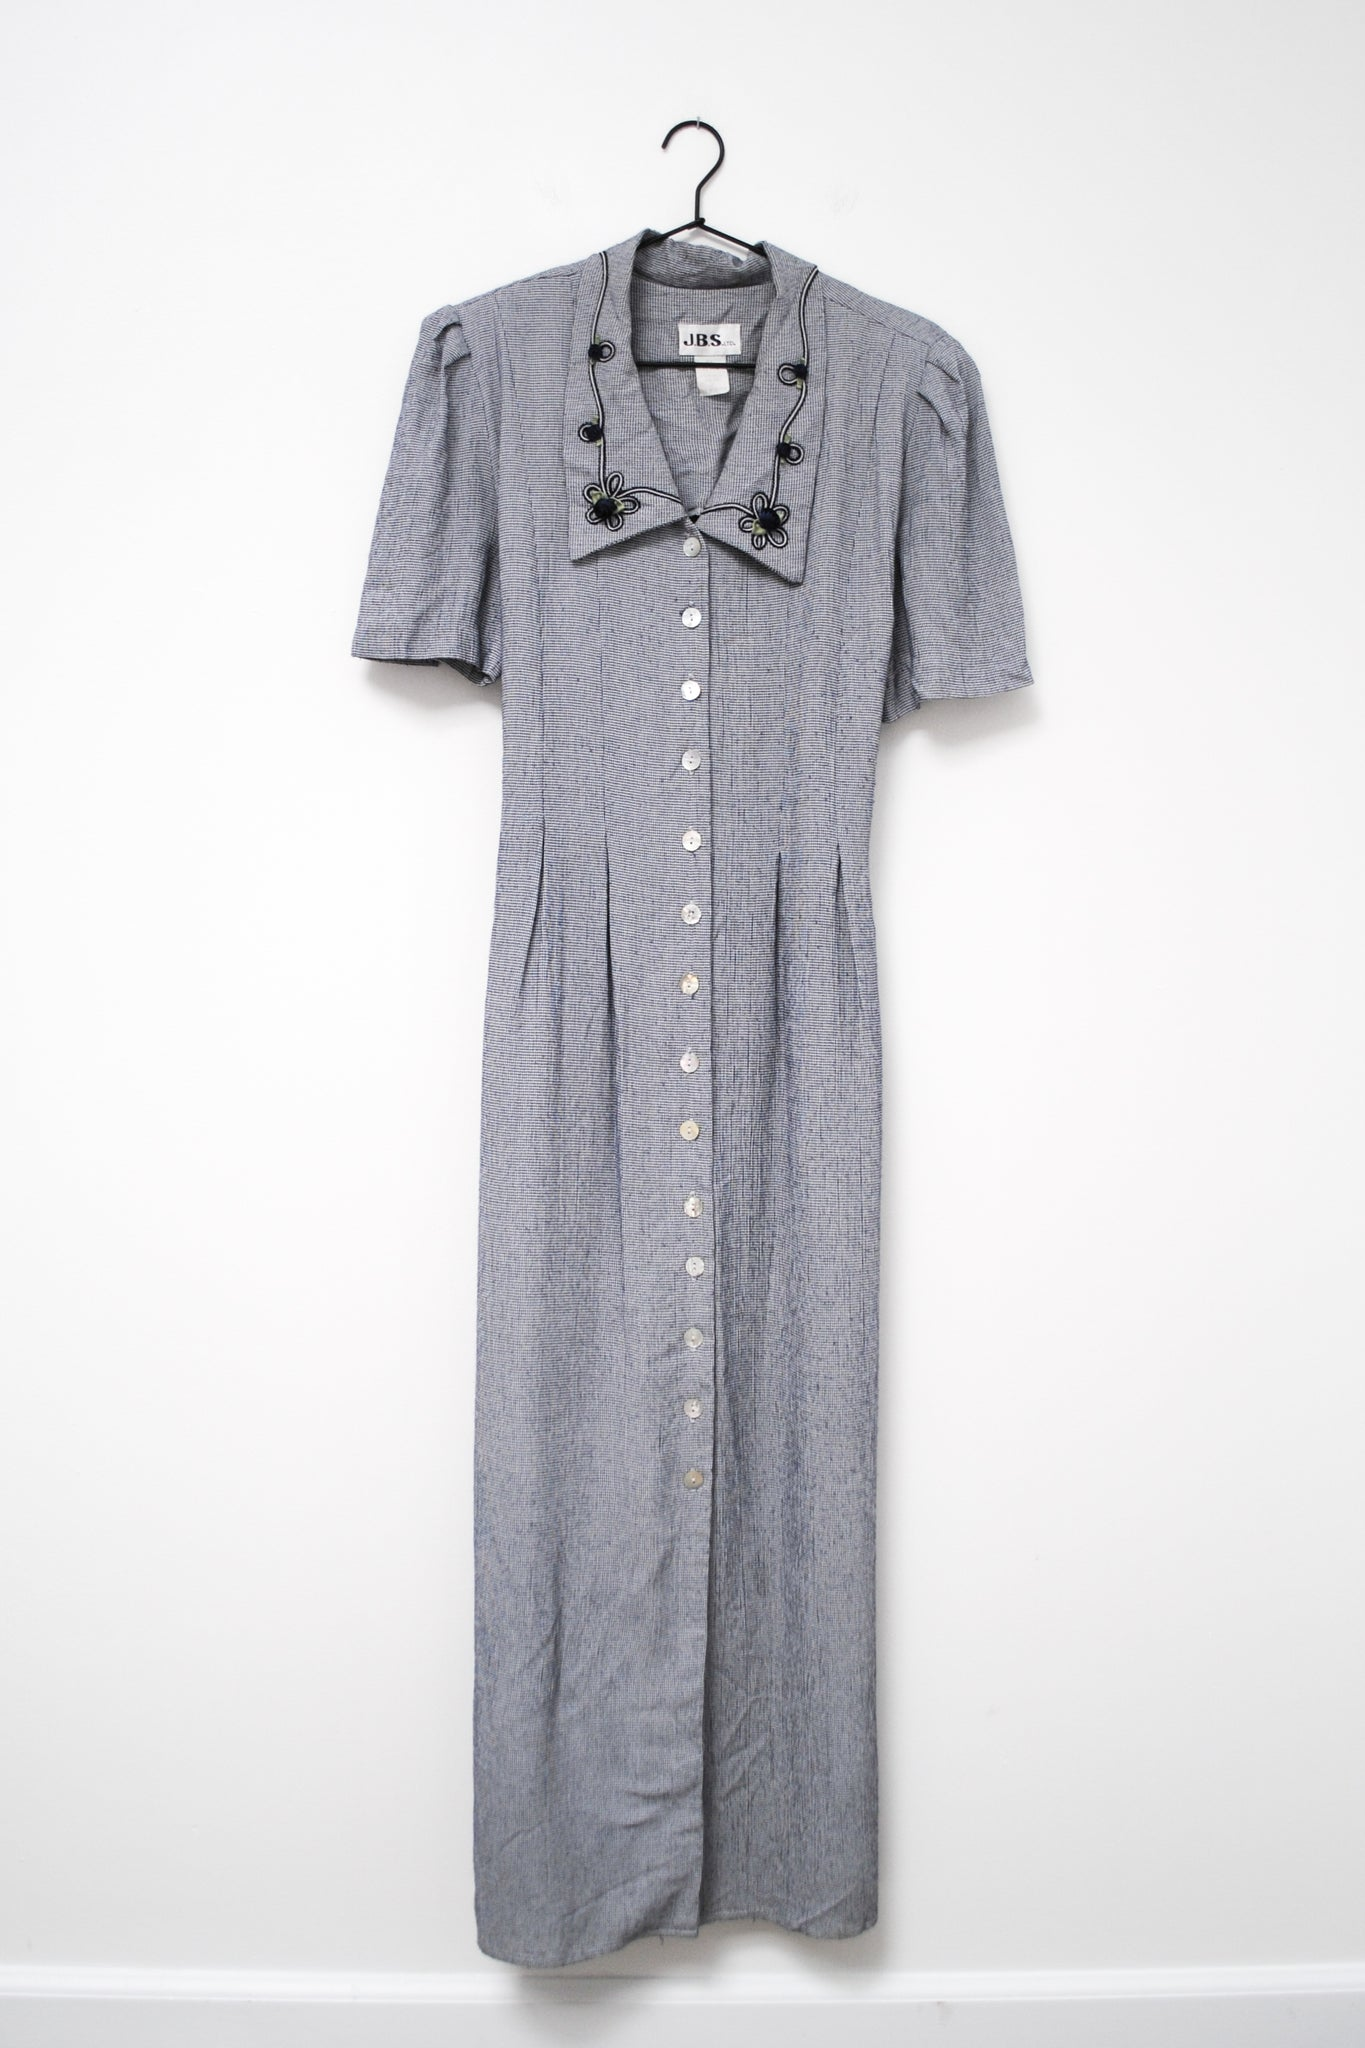 90s Blue Houndstooth Dress / S-M